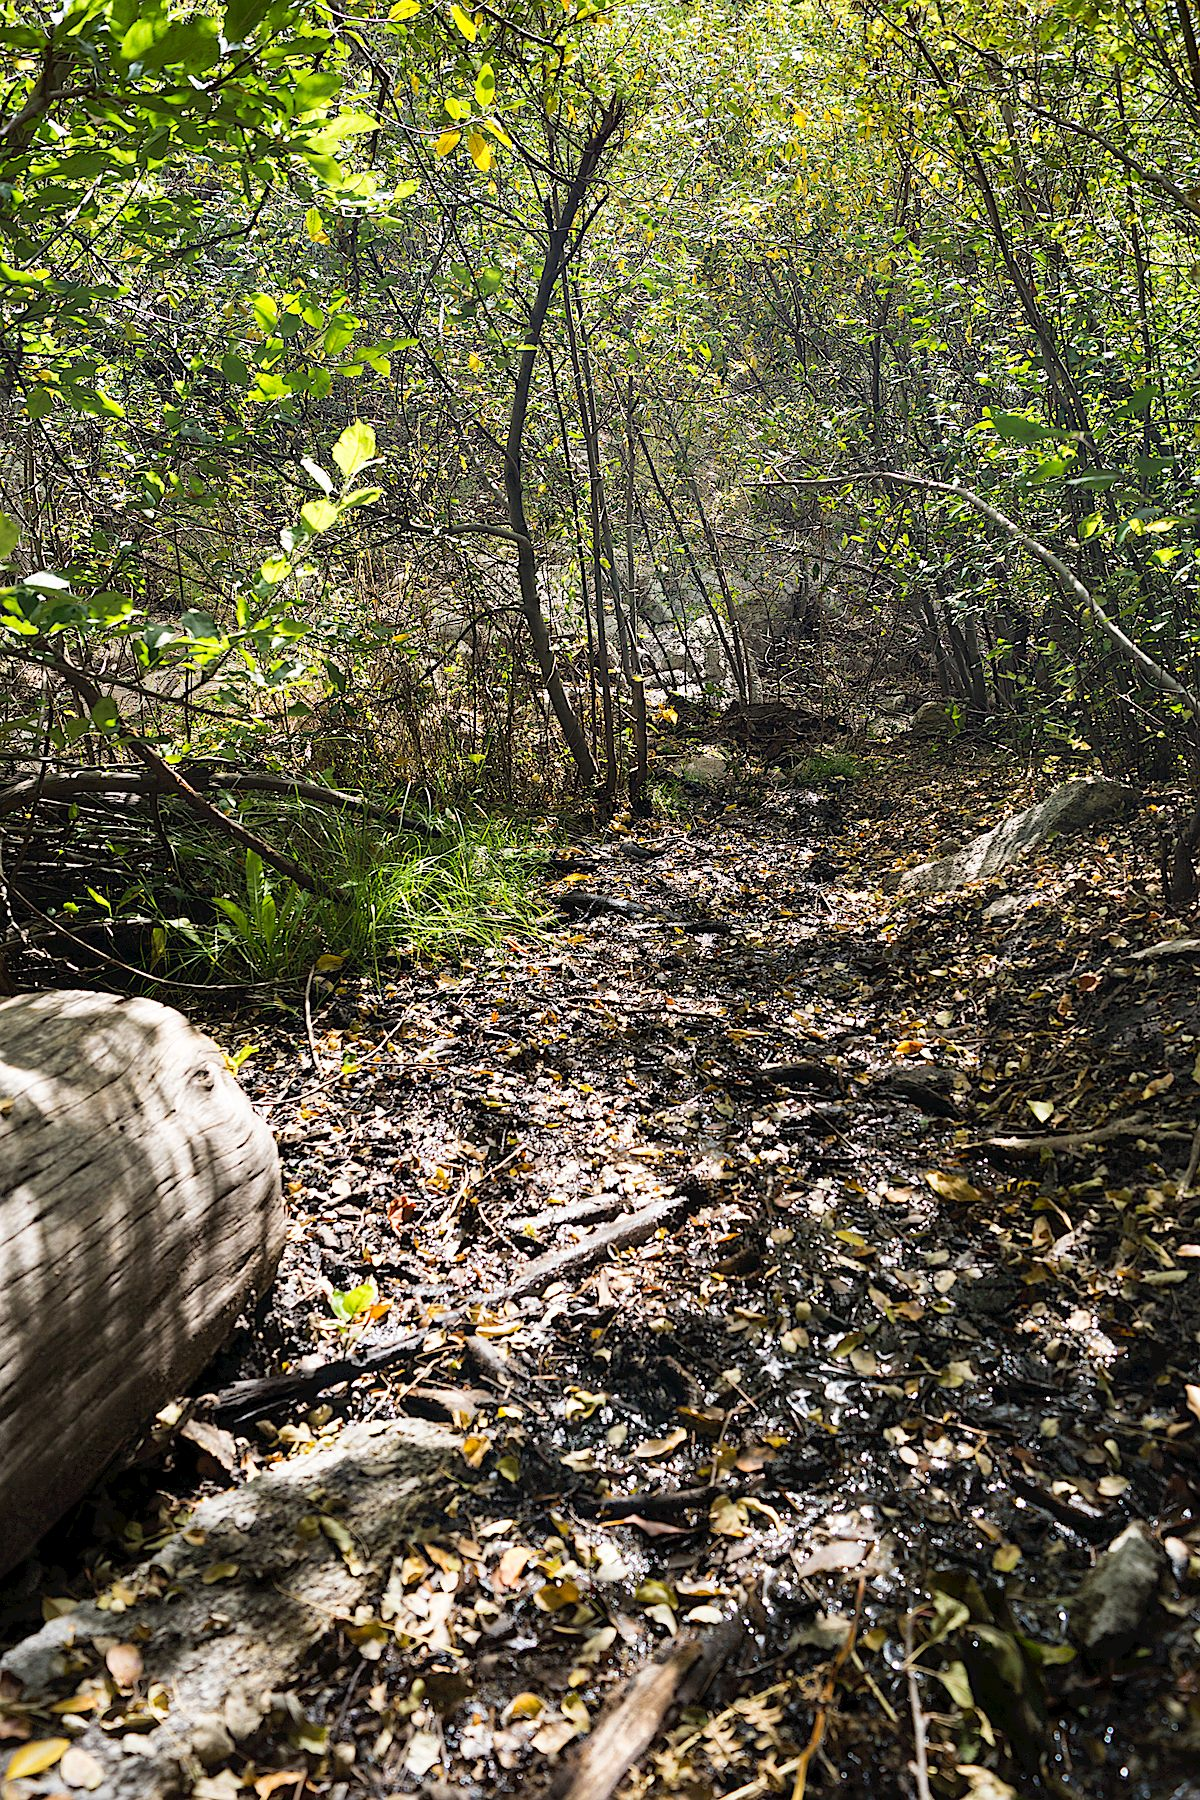 The Palisade Trail - wet and muddy below Mud Spring. October 2014.